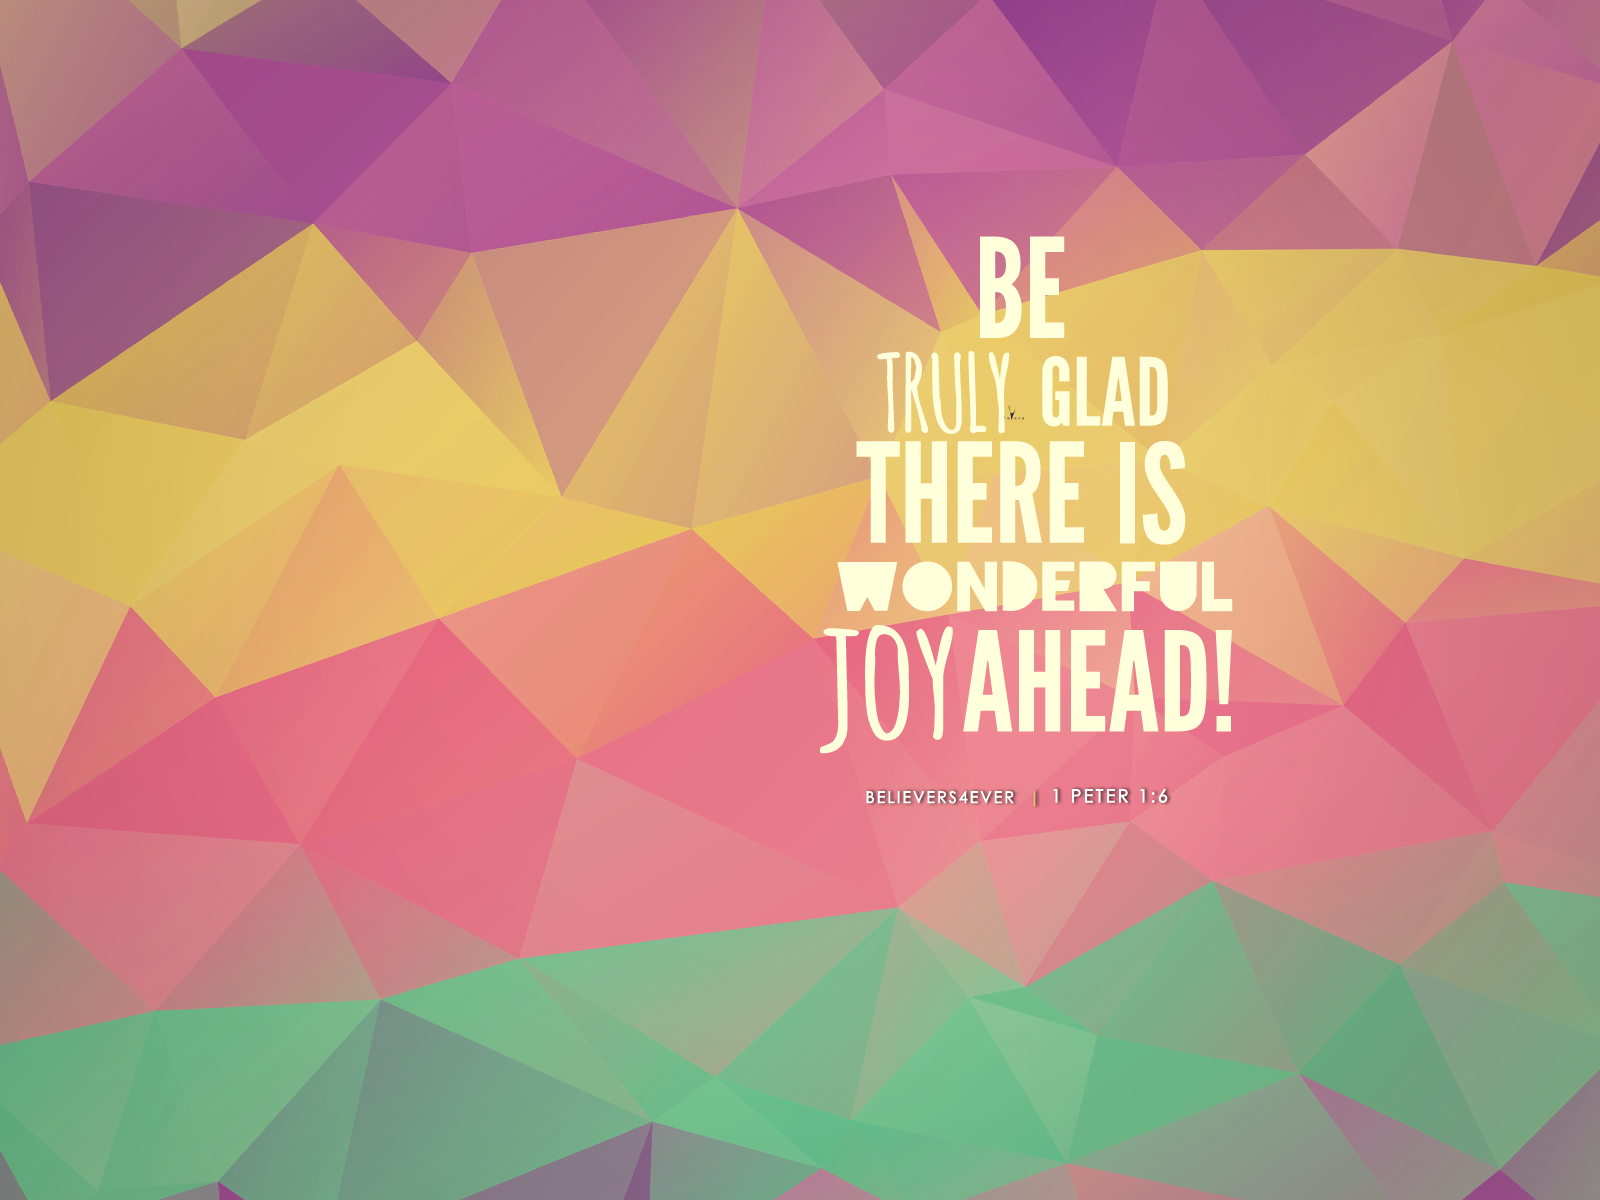 be truly glad there is wonderful joy ahead 1 peter 16 christian